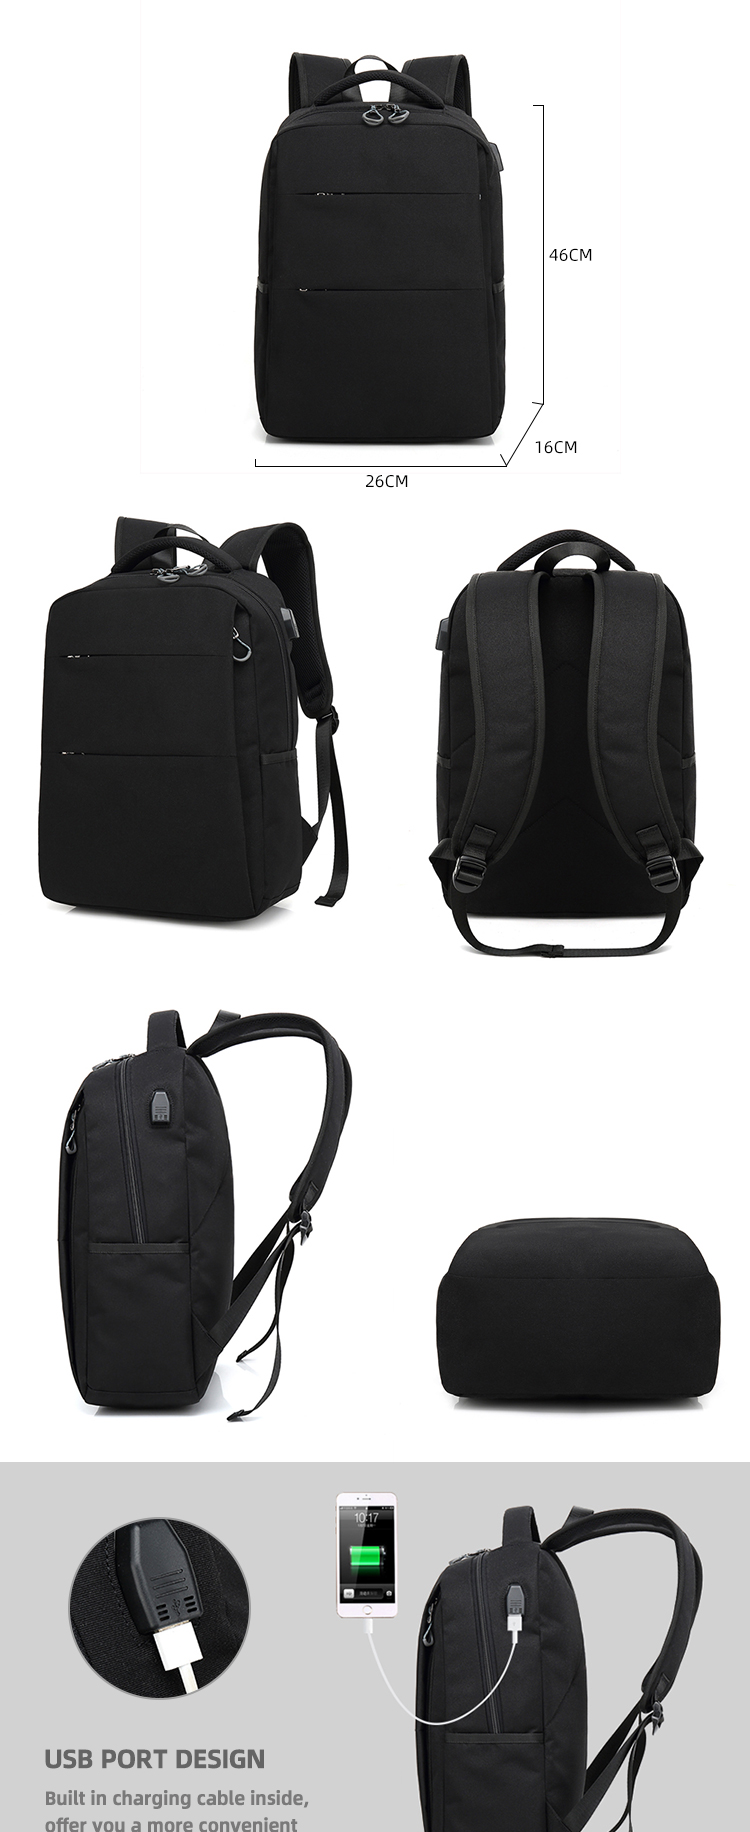 factory wholesale custom waterproof usb charger port 12 14 15 15.6 16 17 17.3 17.5 18 19 20 inch laptop backpack